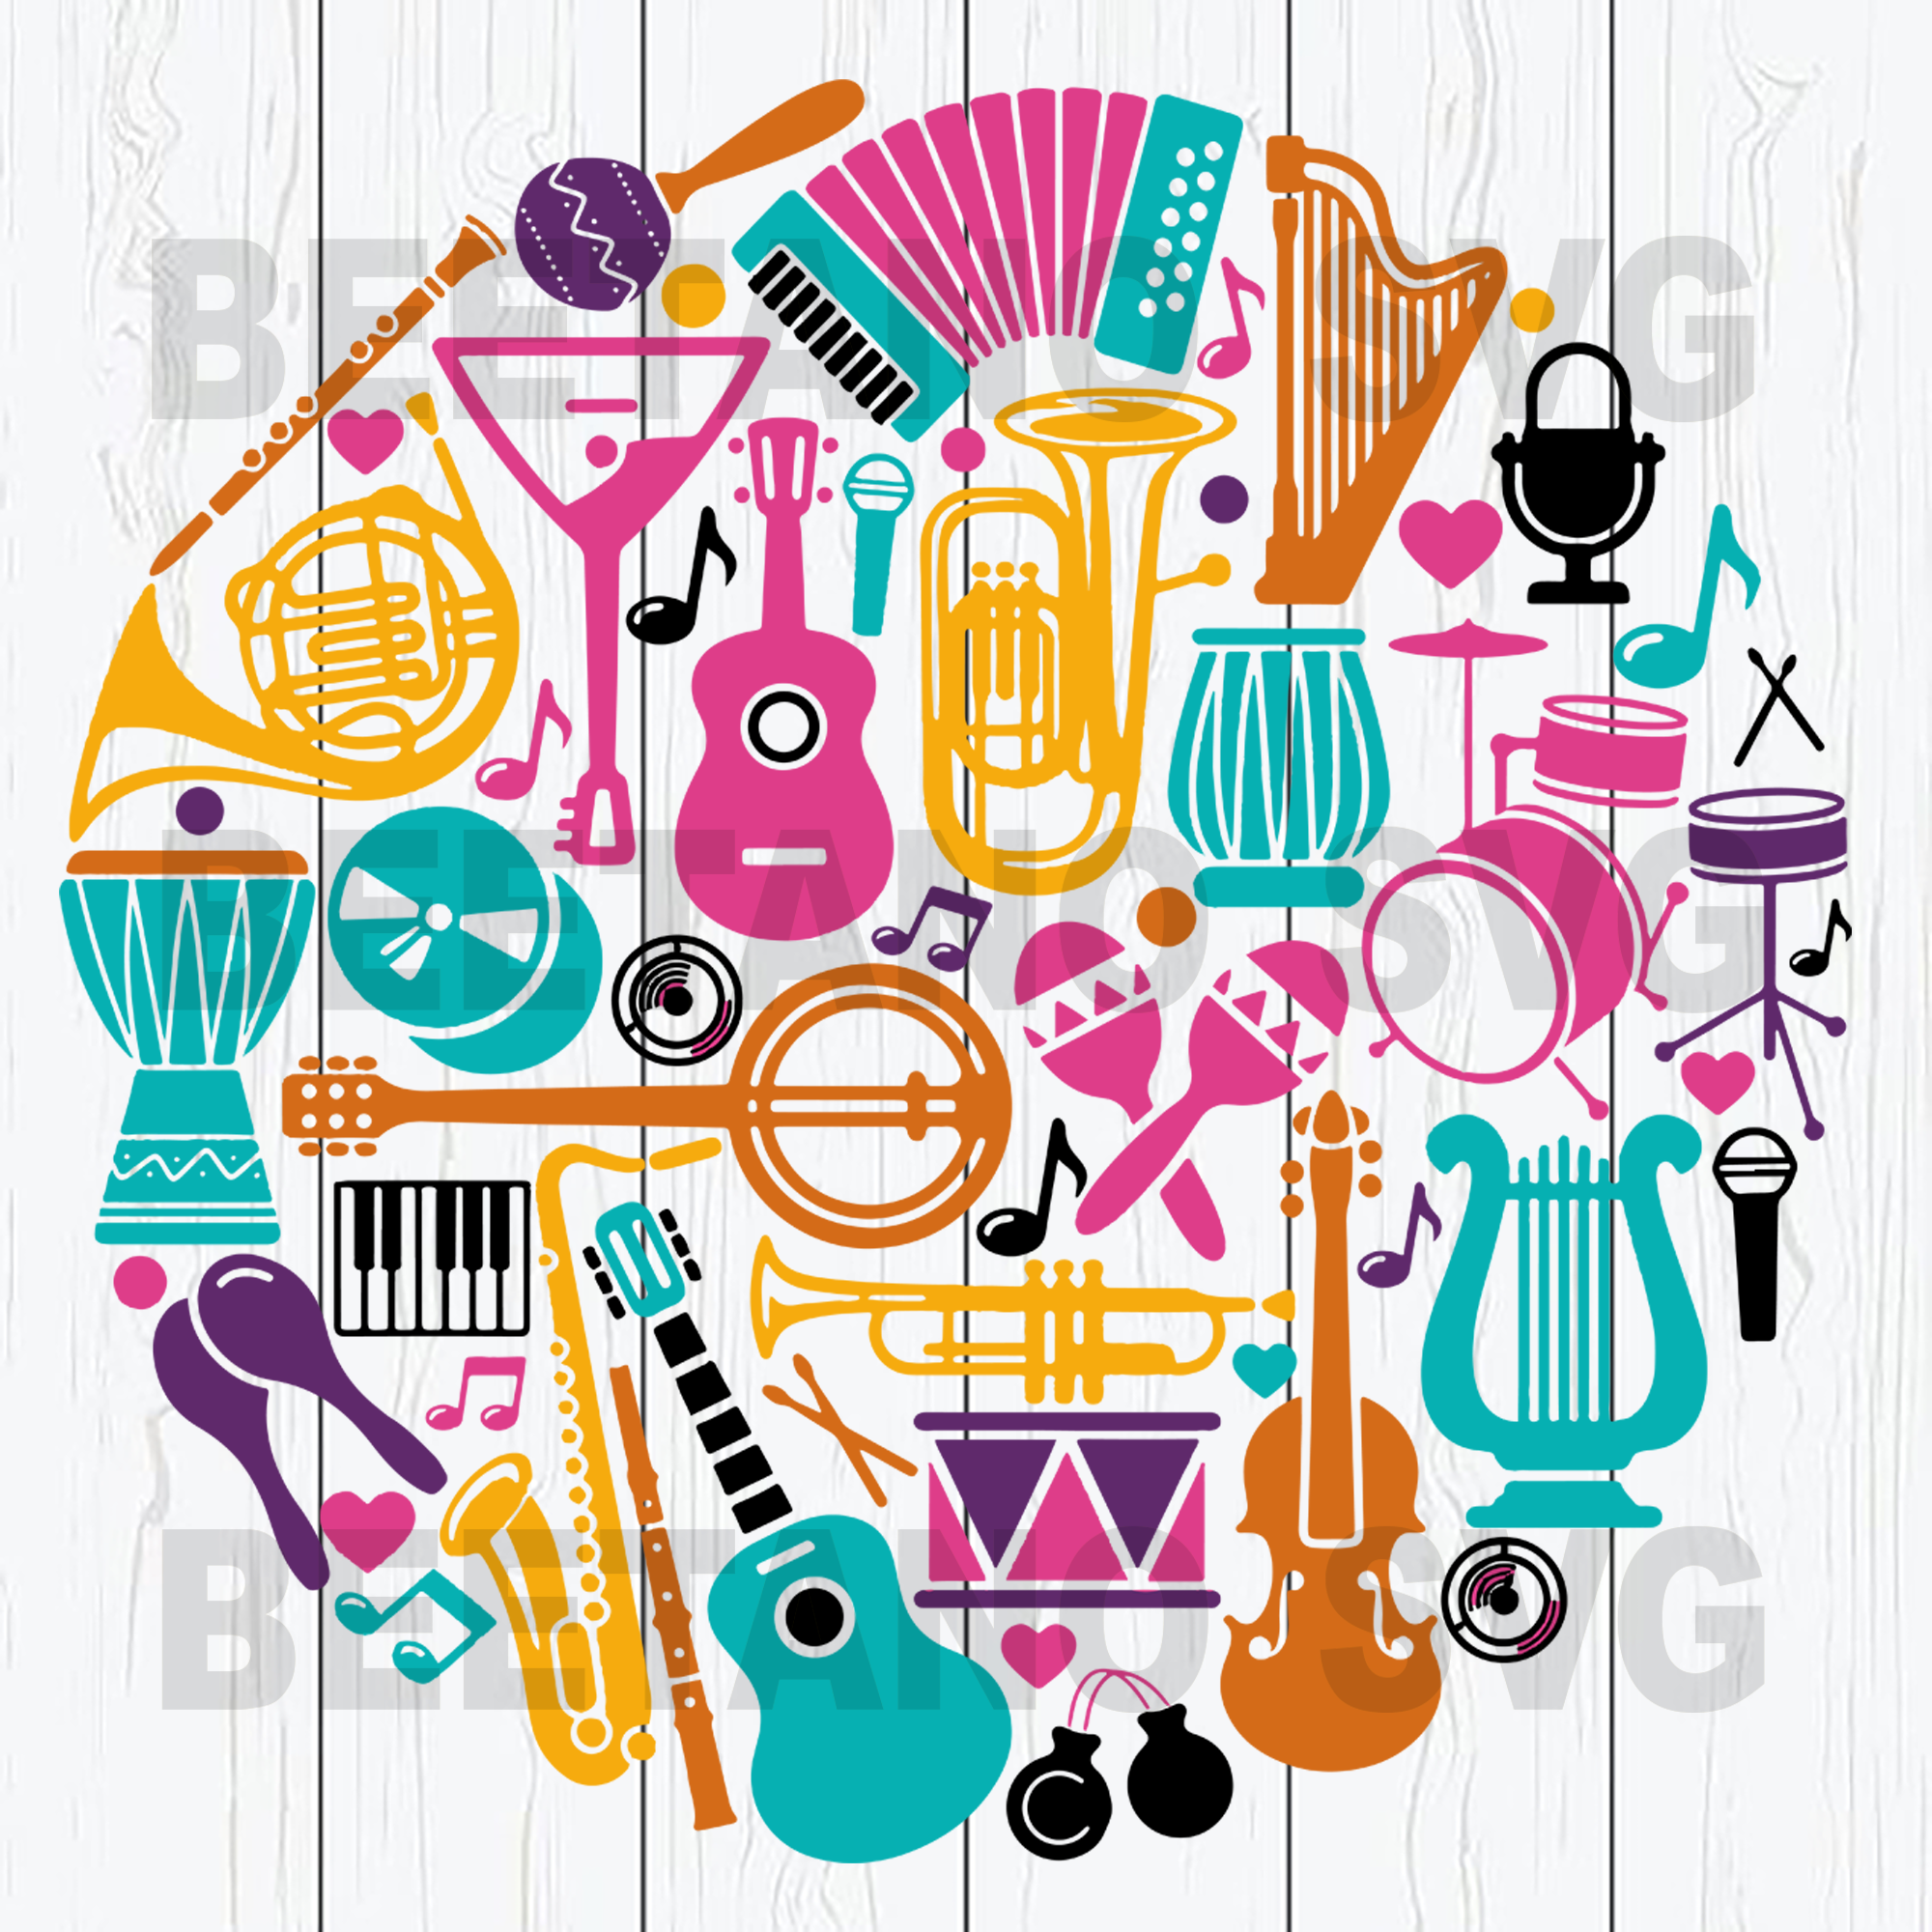 Musical instrument Cutting Files For Cricut, SVG, DXF, EPS, PNG Instant Download